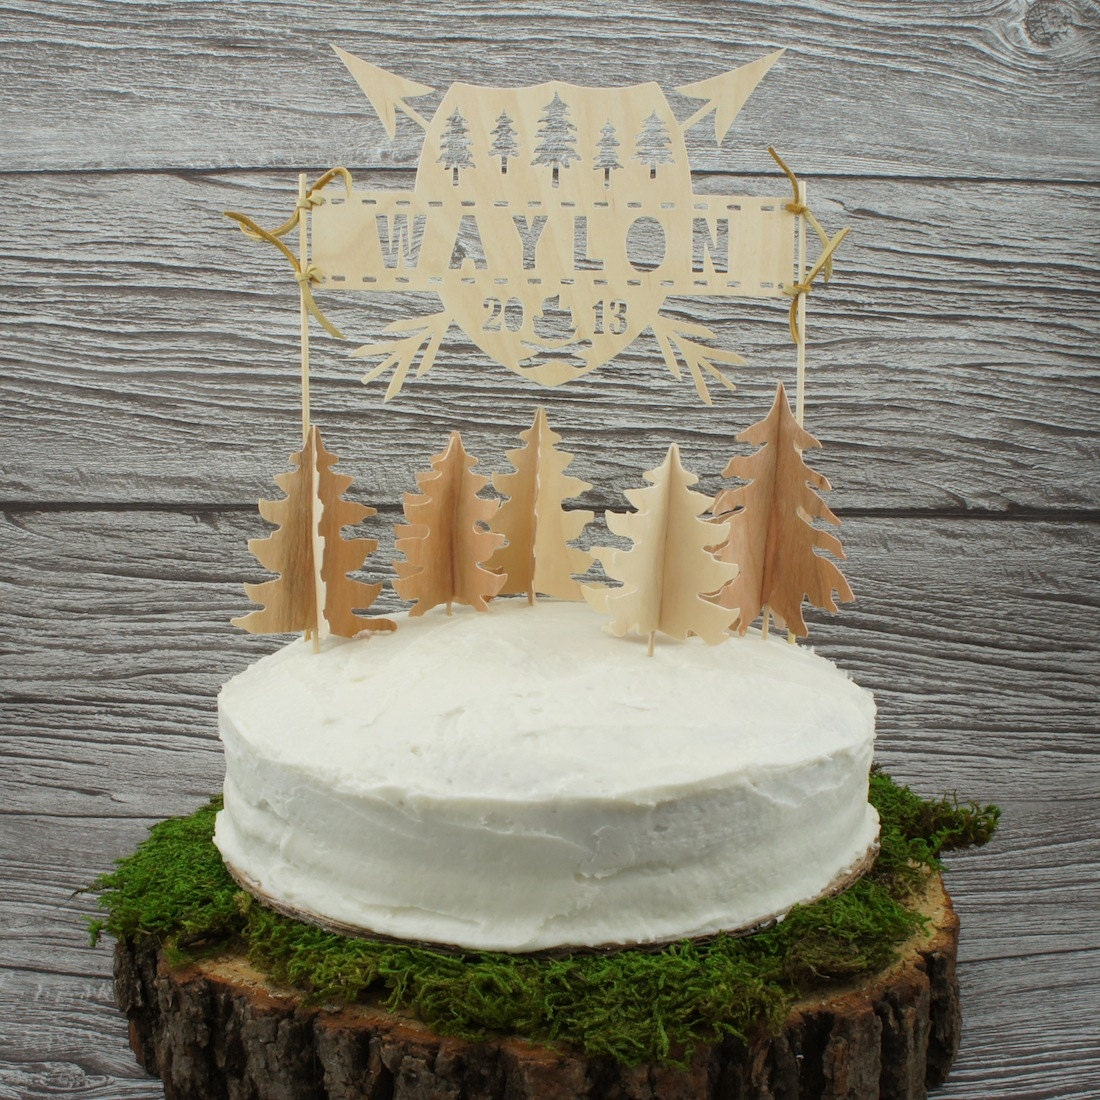 Cake Toppers Etsy Uk : Personalized Wilderness Cake Topper